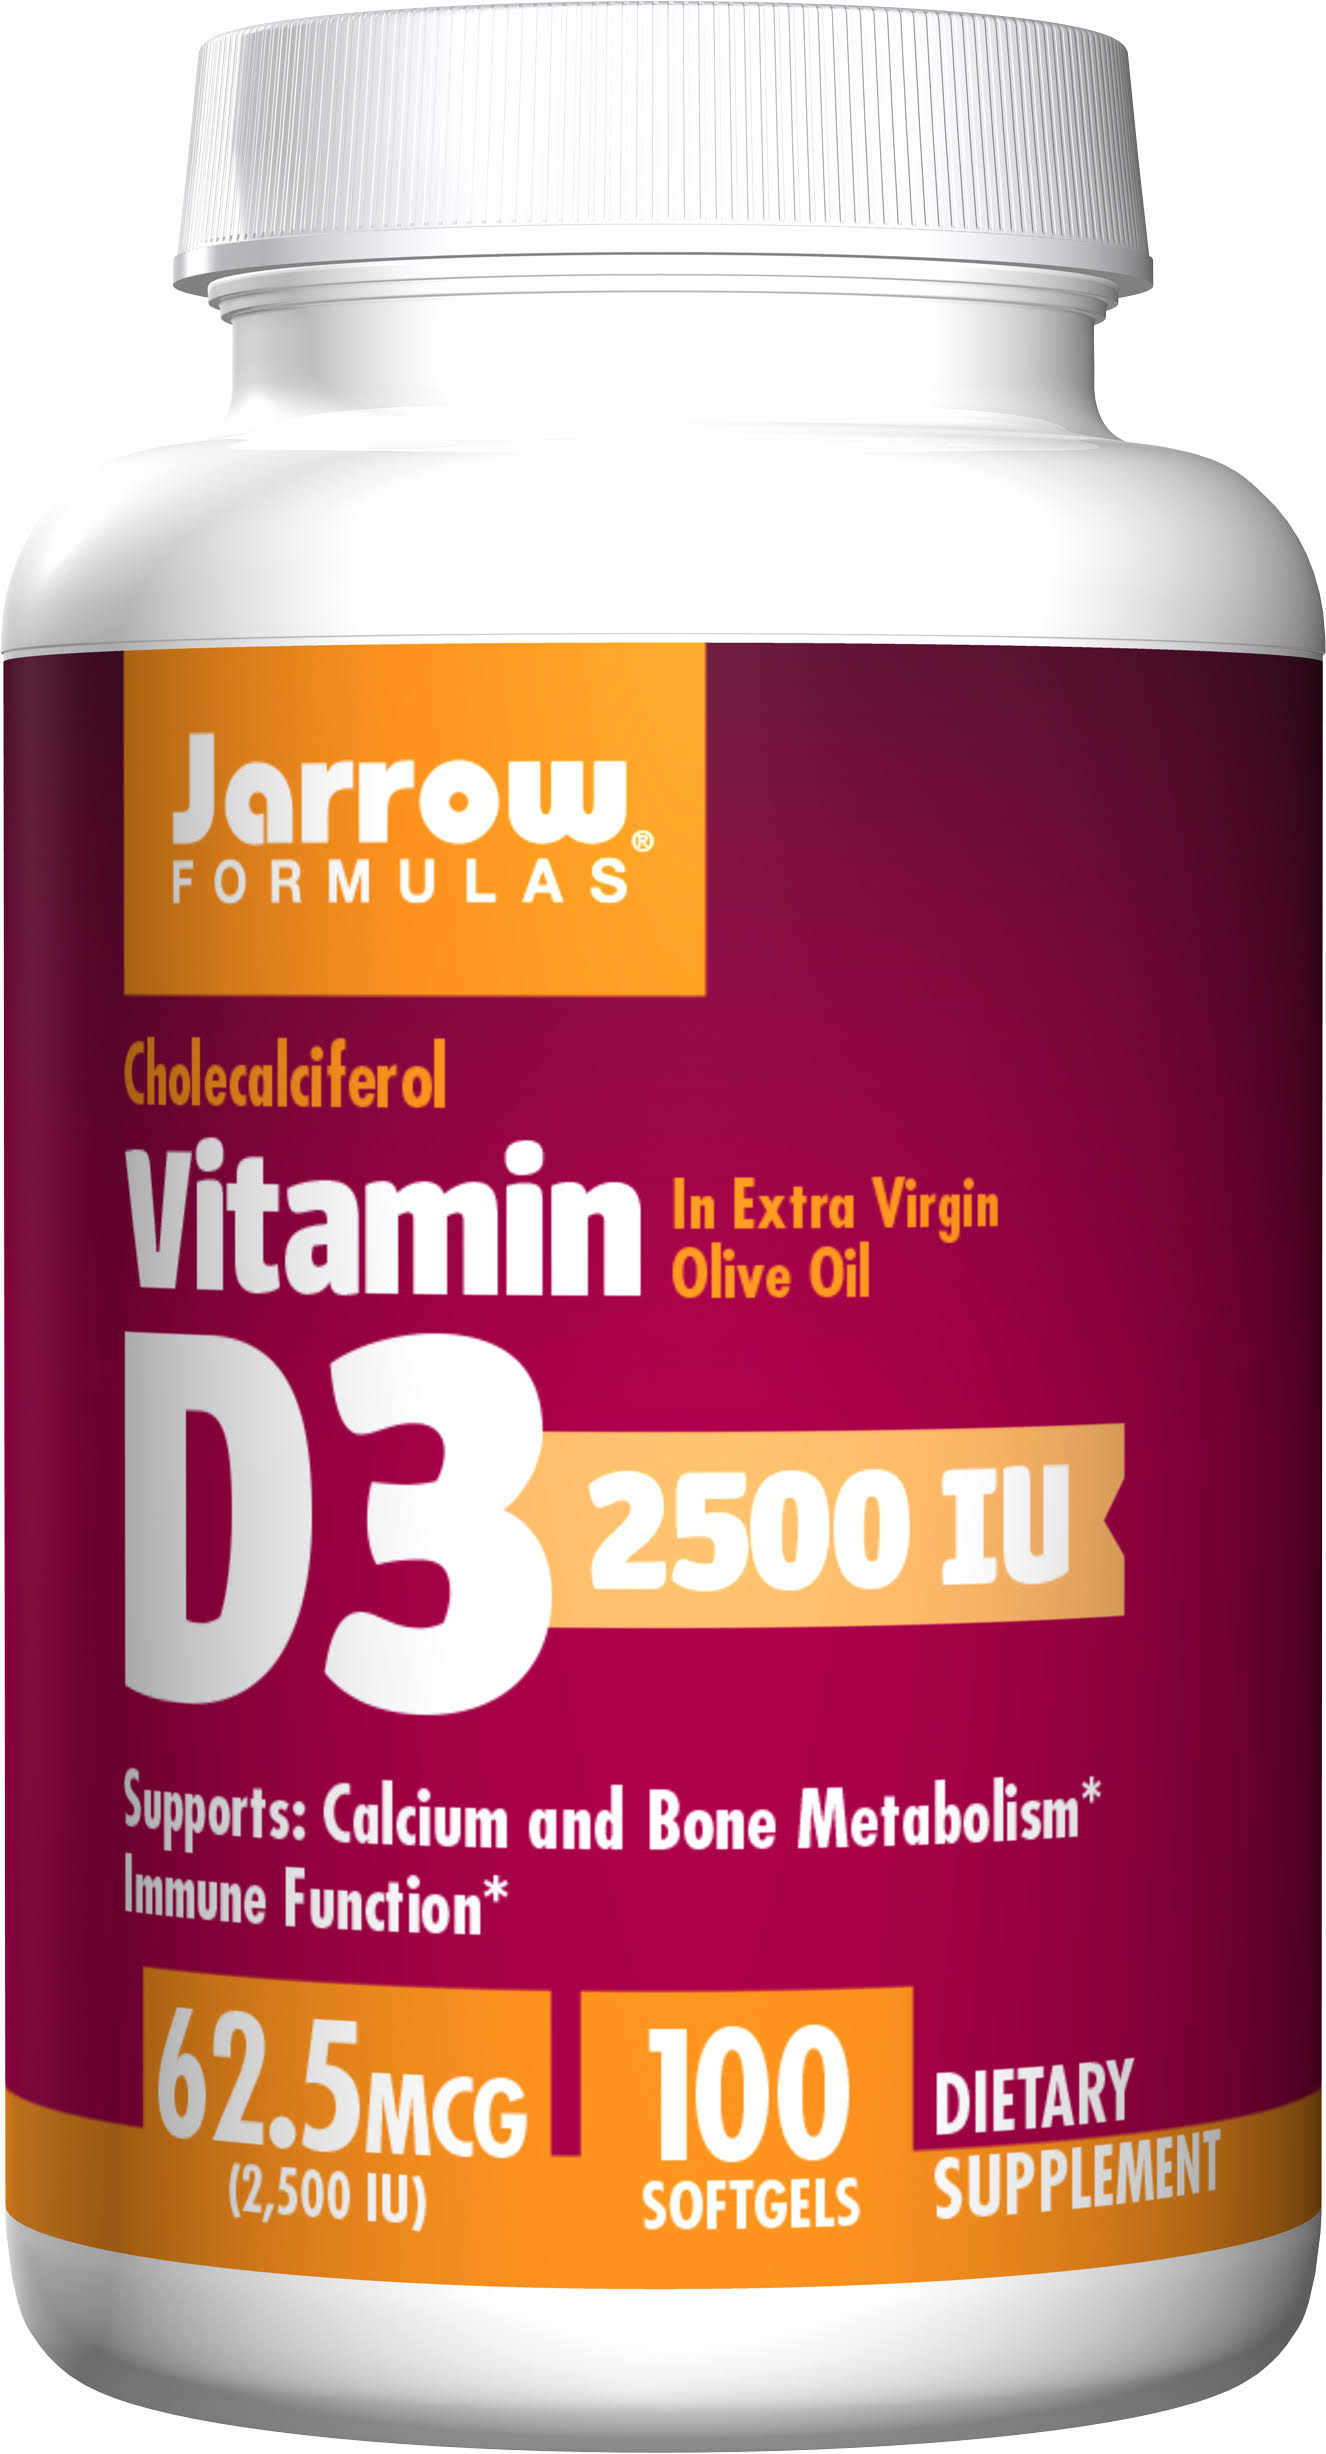 Jarrow Formulas Vitamin D3 - 2500IU, 100 Softgels